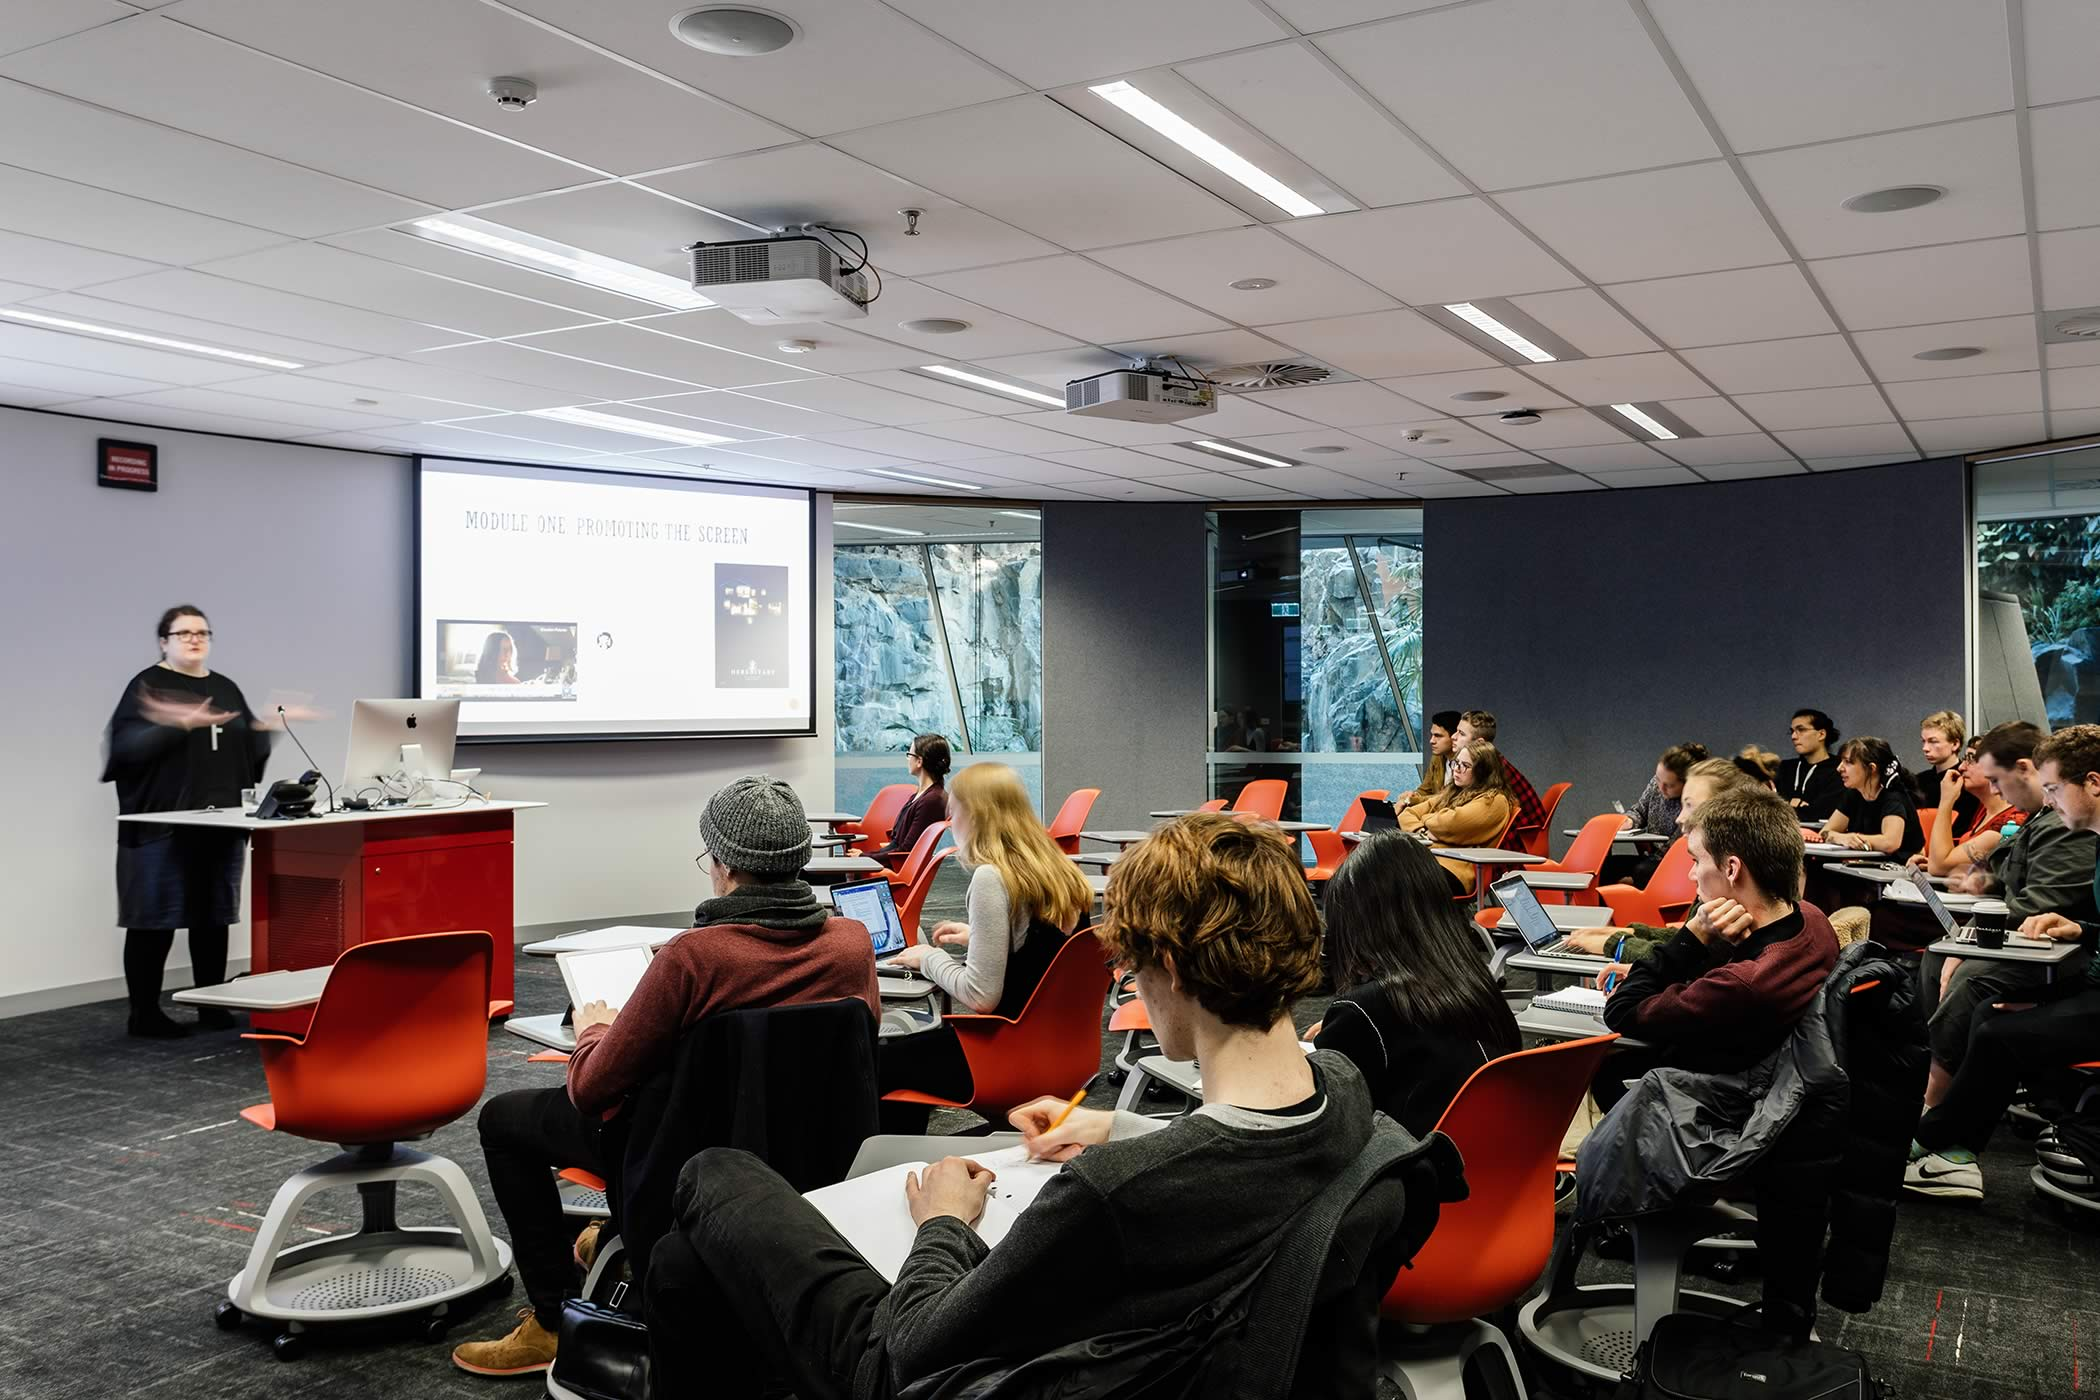 The Media School – University of Tasmania: Elliptical learning spaces support 21st century pedagogy with easily re-configured loose furniture layouts to suit small group collaborative work or a traditional lecture format. Photo by Adam Gibson.